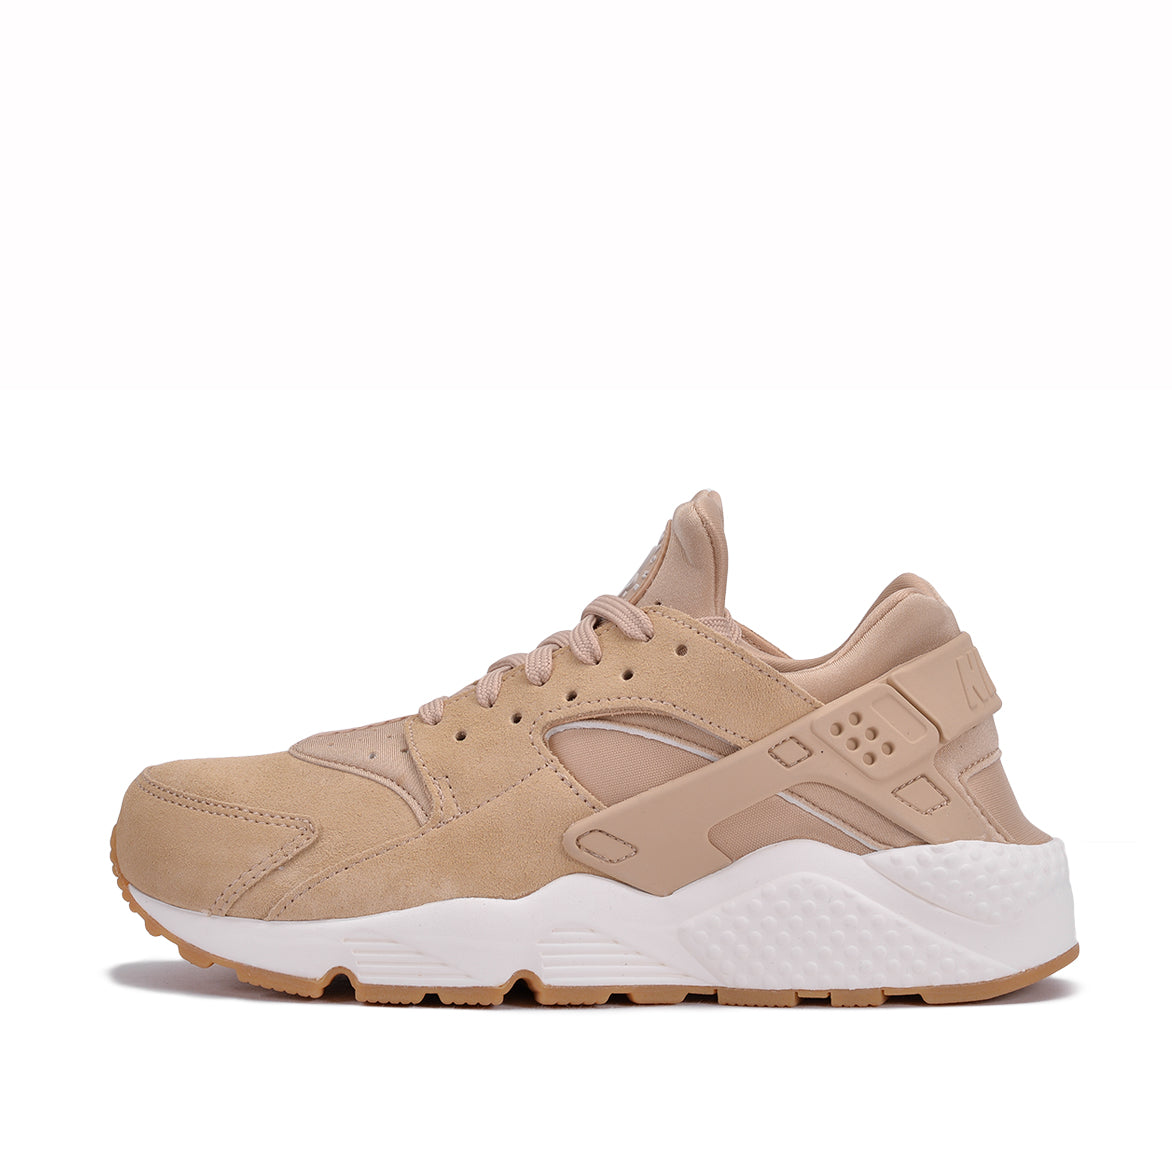 WMNS AIR HUARACHE RUN SD MUSHROOM